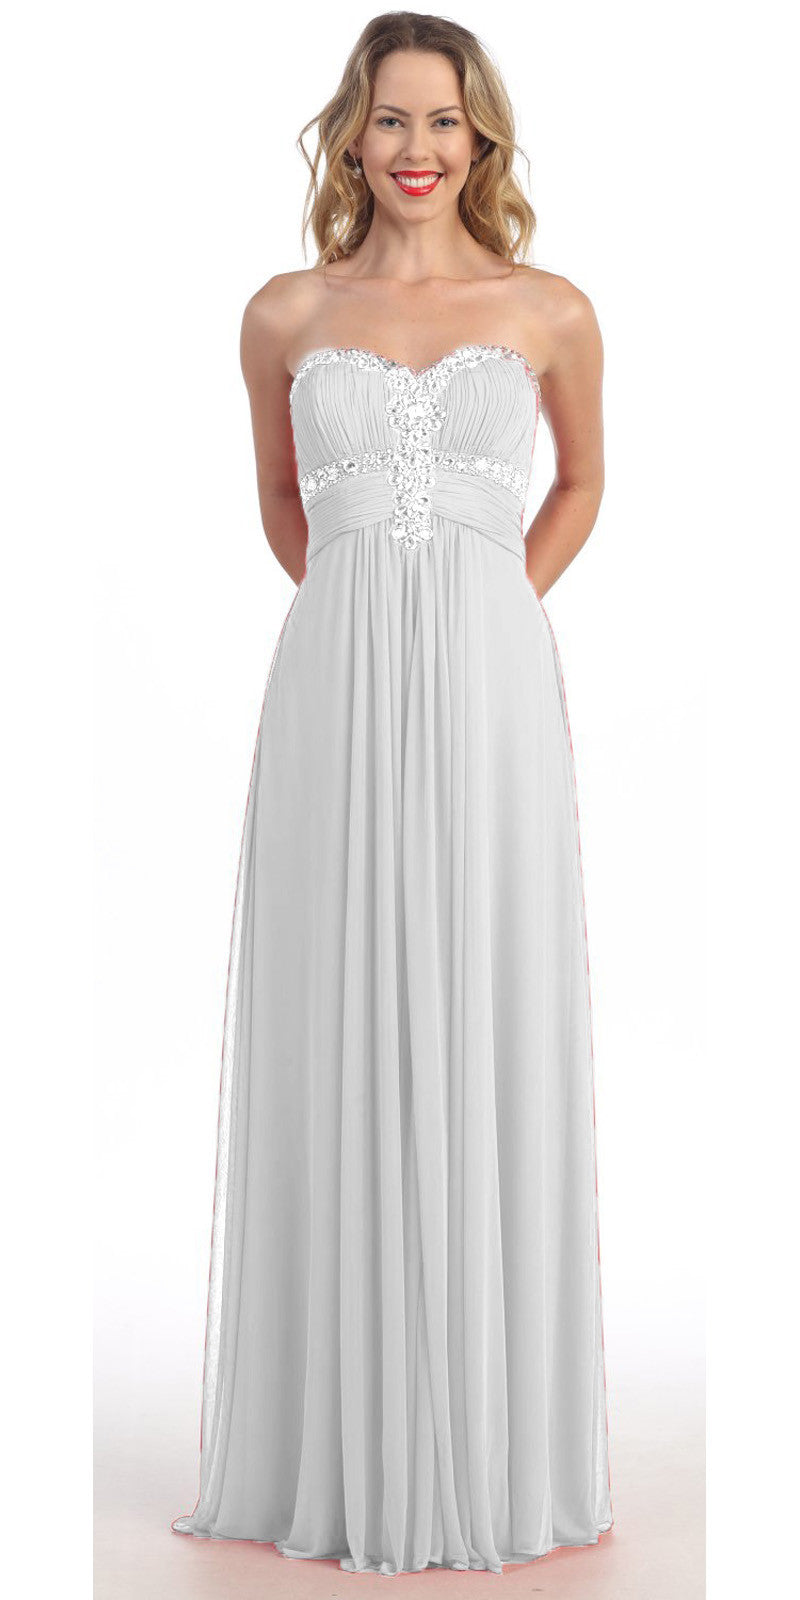 Ivory Formal Gown Chiffon Long Empire Waist Rhinestone Bodice